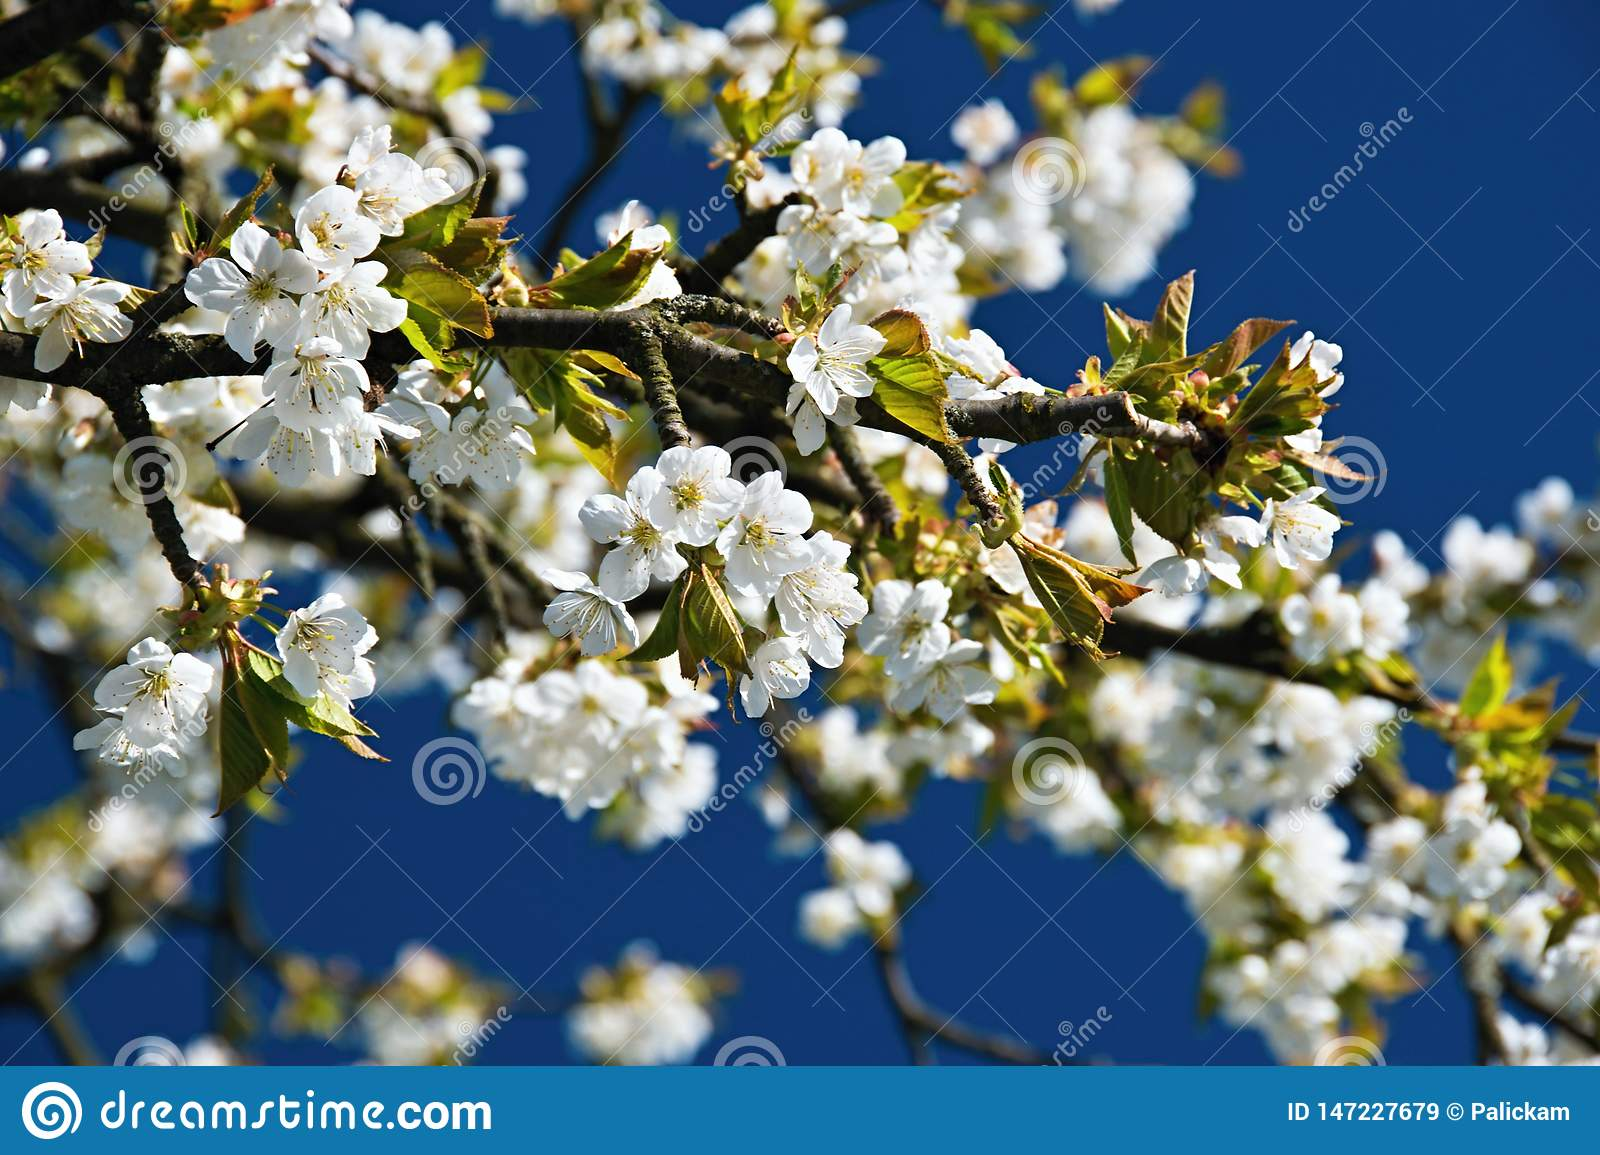 Apple blossom on spring, flowers on branch